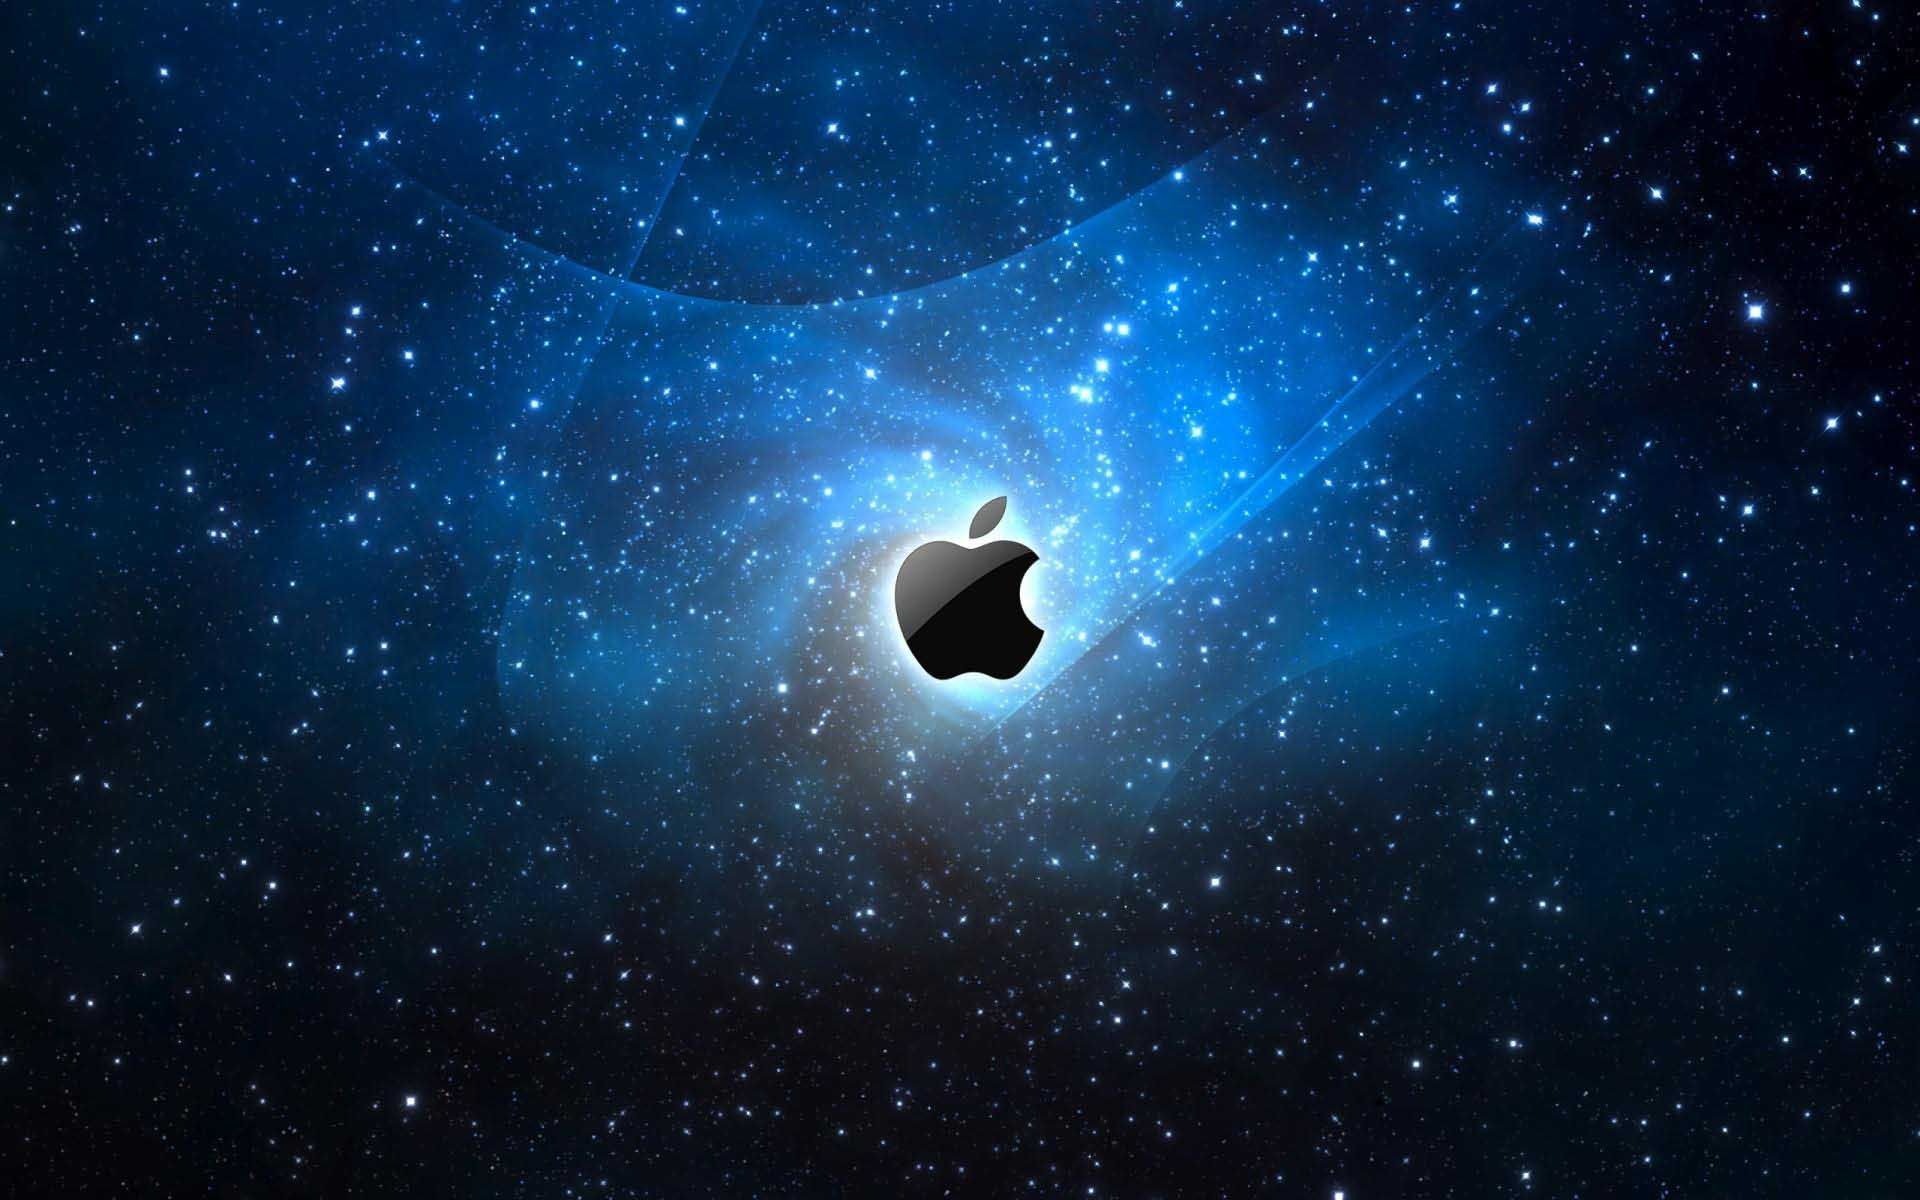 Apple logo wallpapers full hd wallpaper search page 10 - Computers Apple Logo In Space Moving Wallpaper 1920x1200 Cool Pc Wallpapers